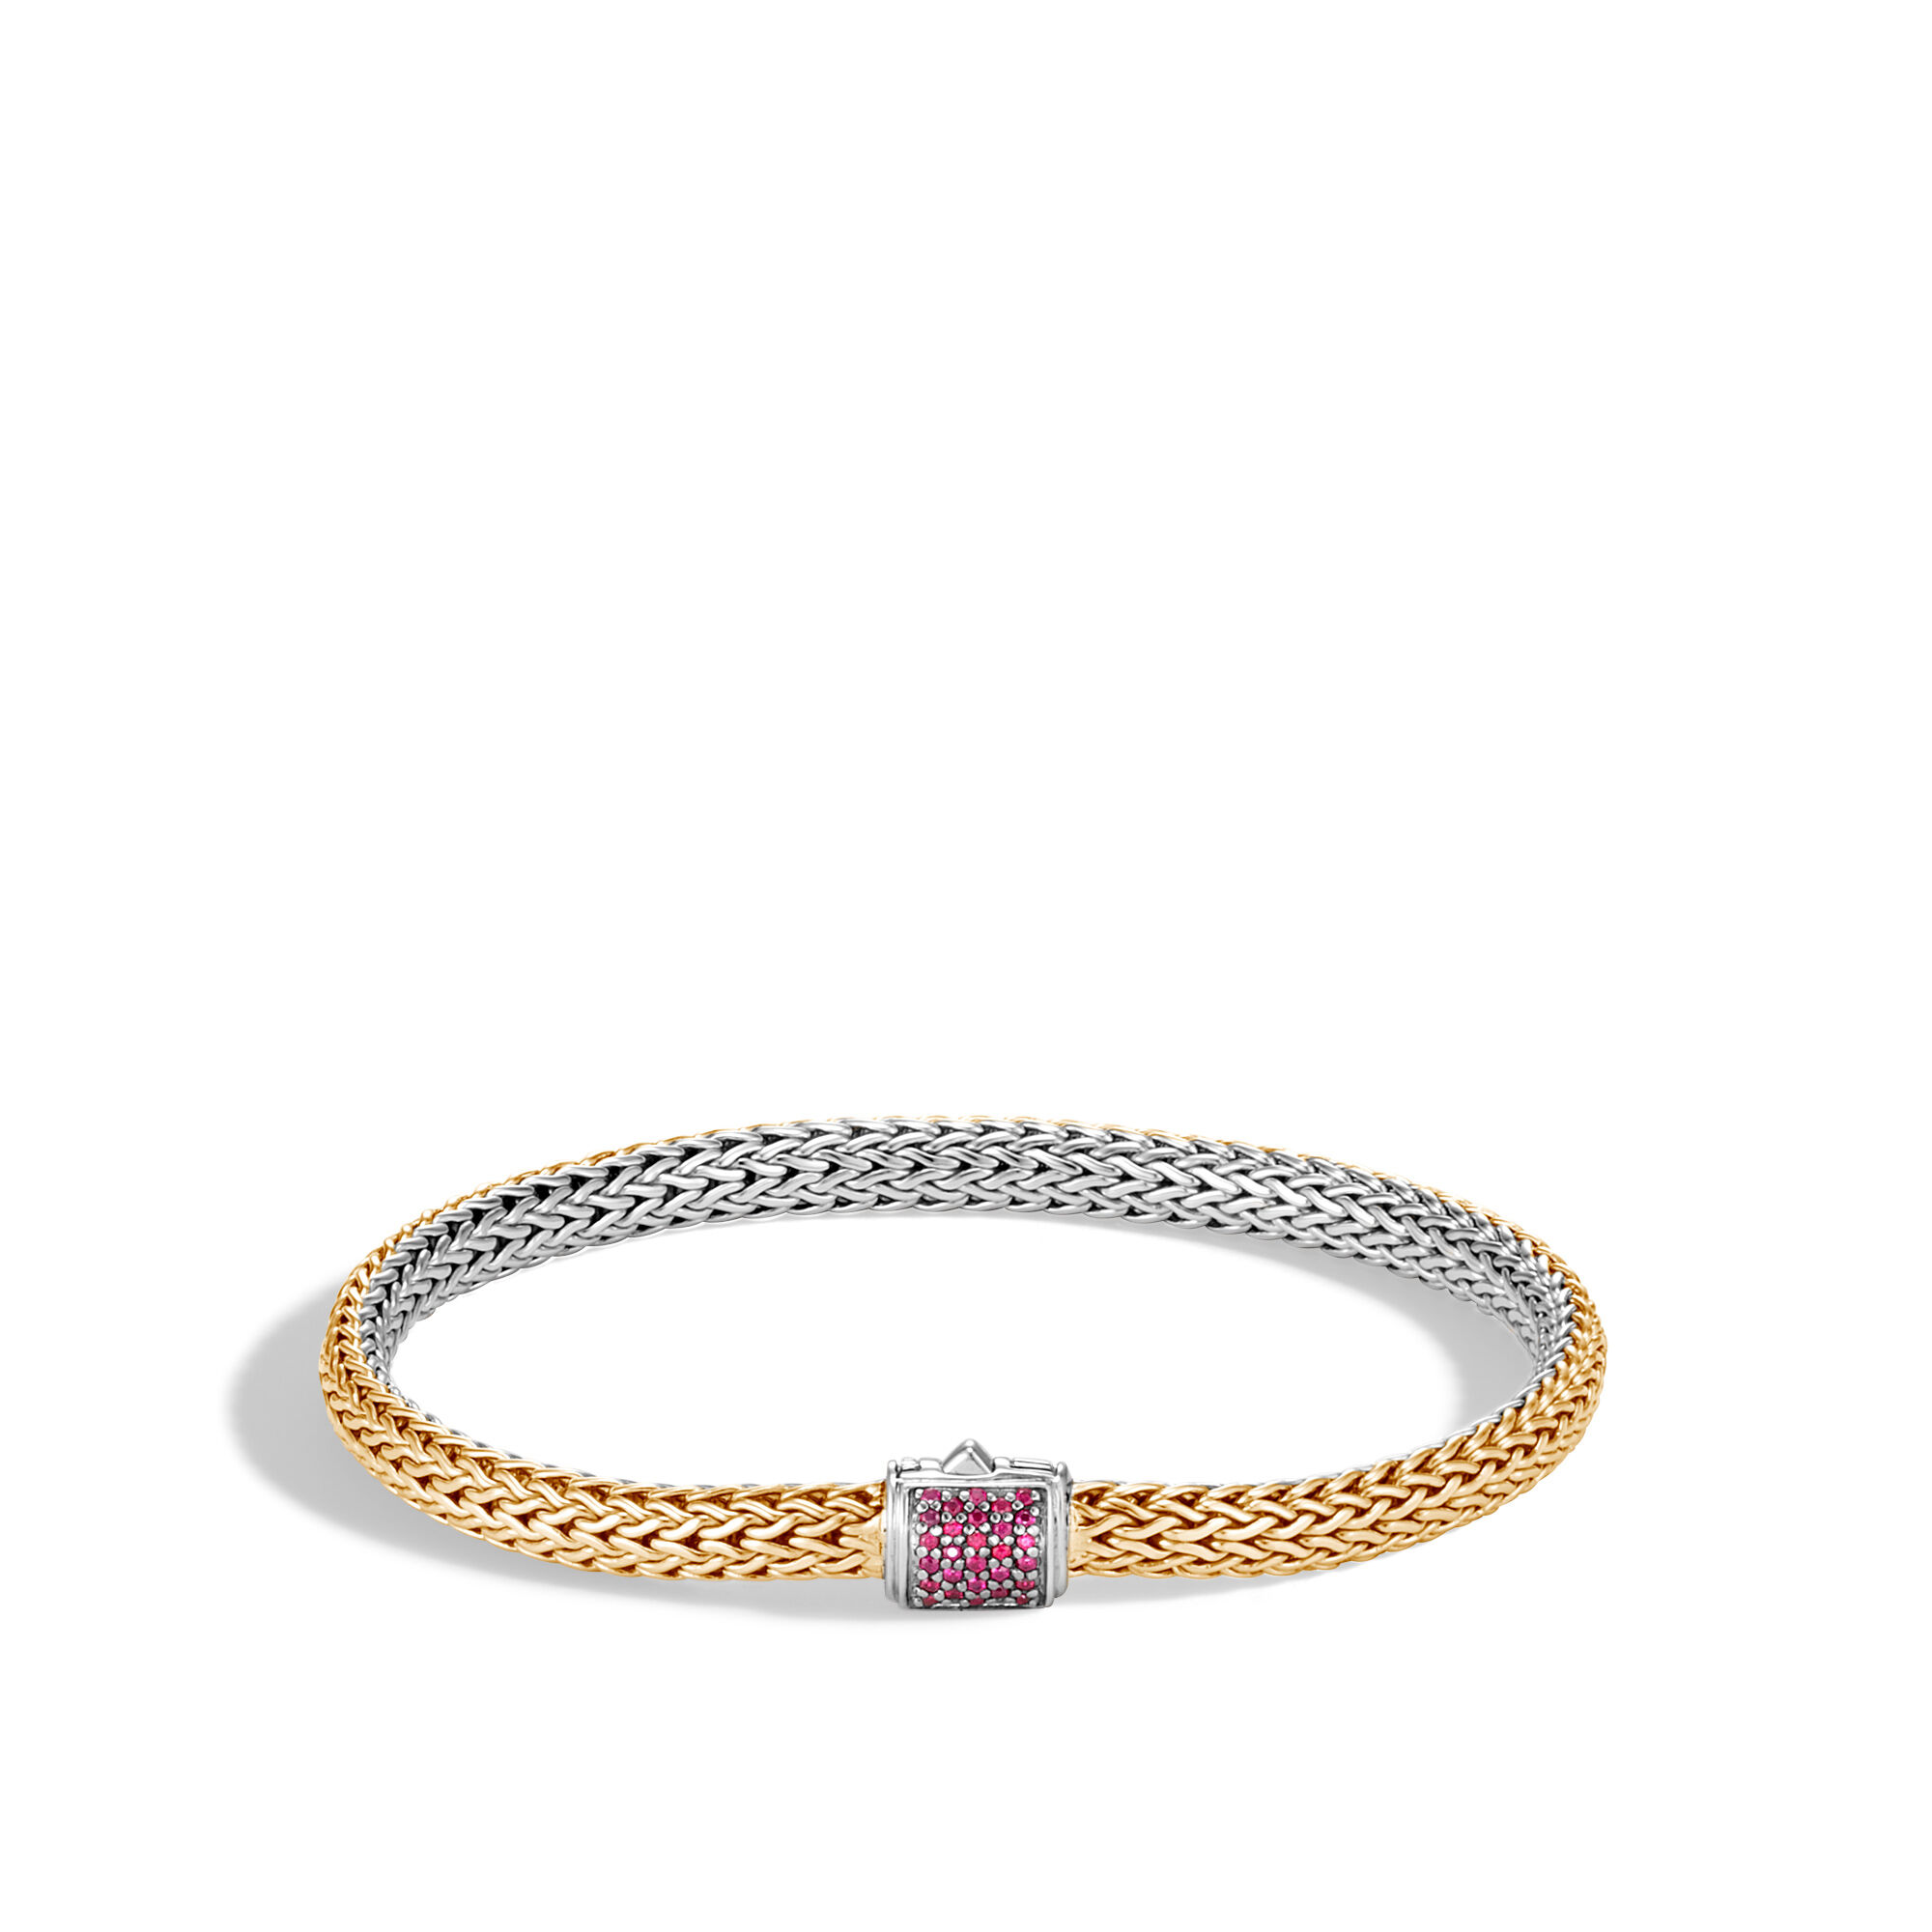 John Hardy Classic Chain Reversible Bracelet With Pink Sapphire Xs Pink sapphire 2o4SBsD3hS